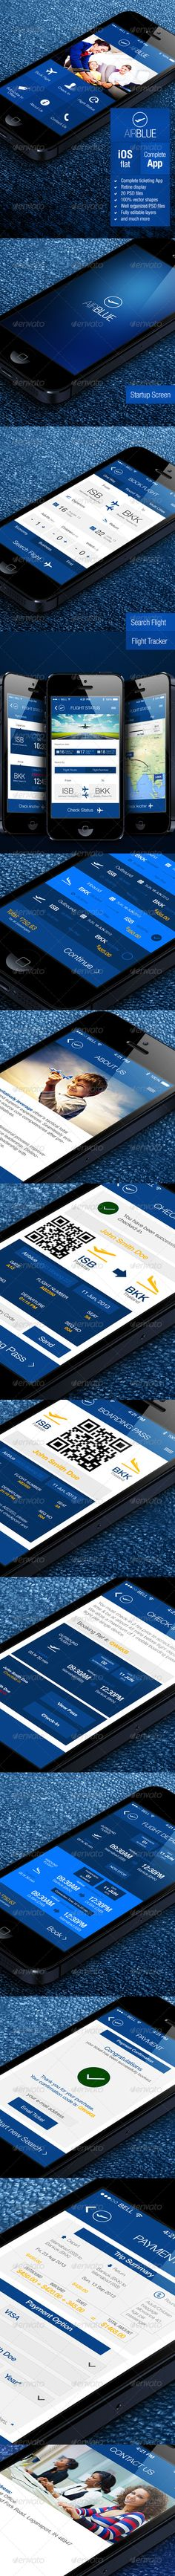 AirBlue - Flight Ticket Booking App - User Interfaces Web Elements